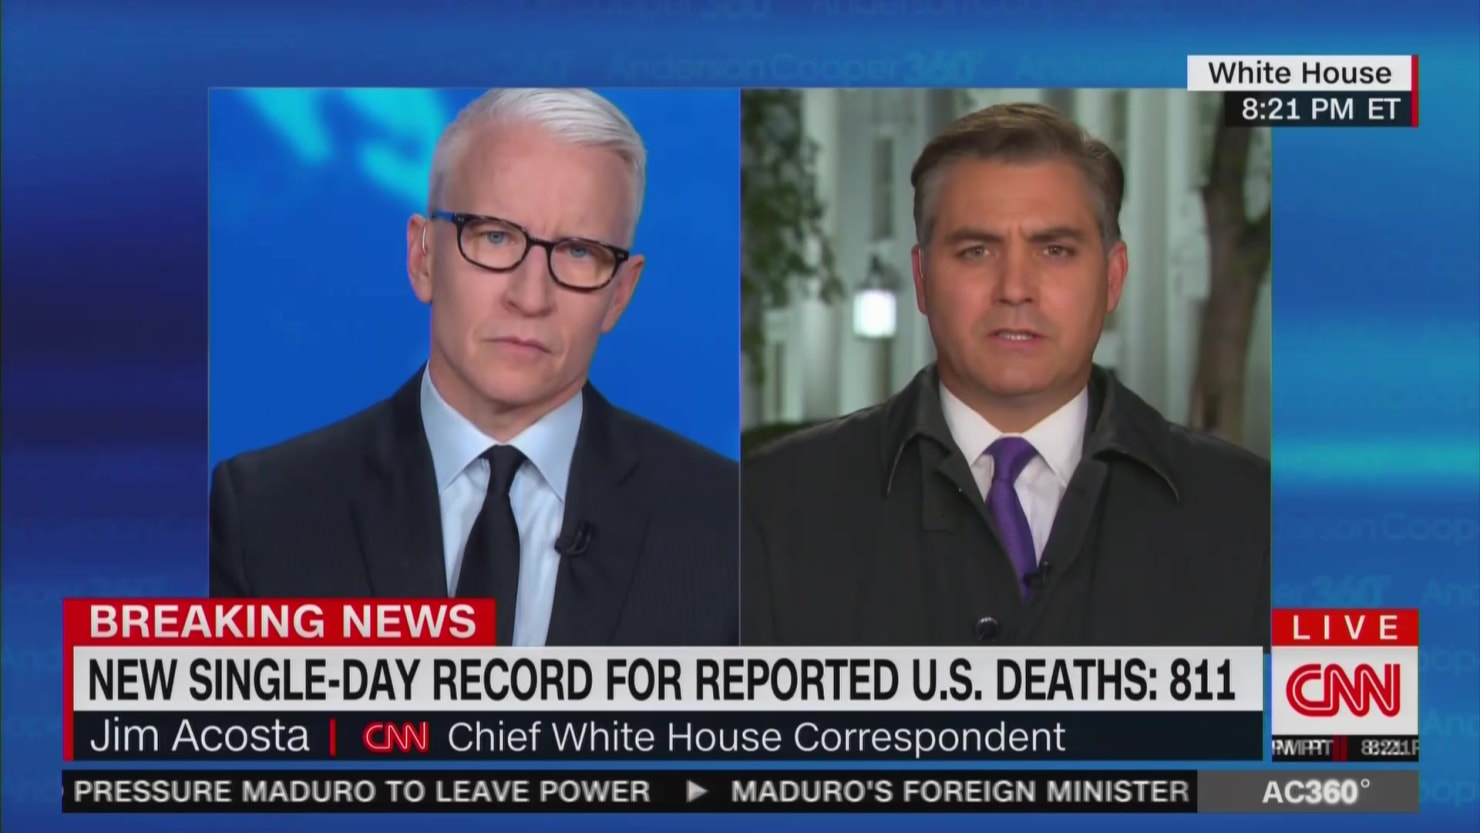 CNN's Jim Acosta: 'This Was a Different Trump' at Coronavirus Briefing